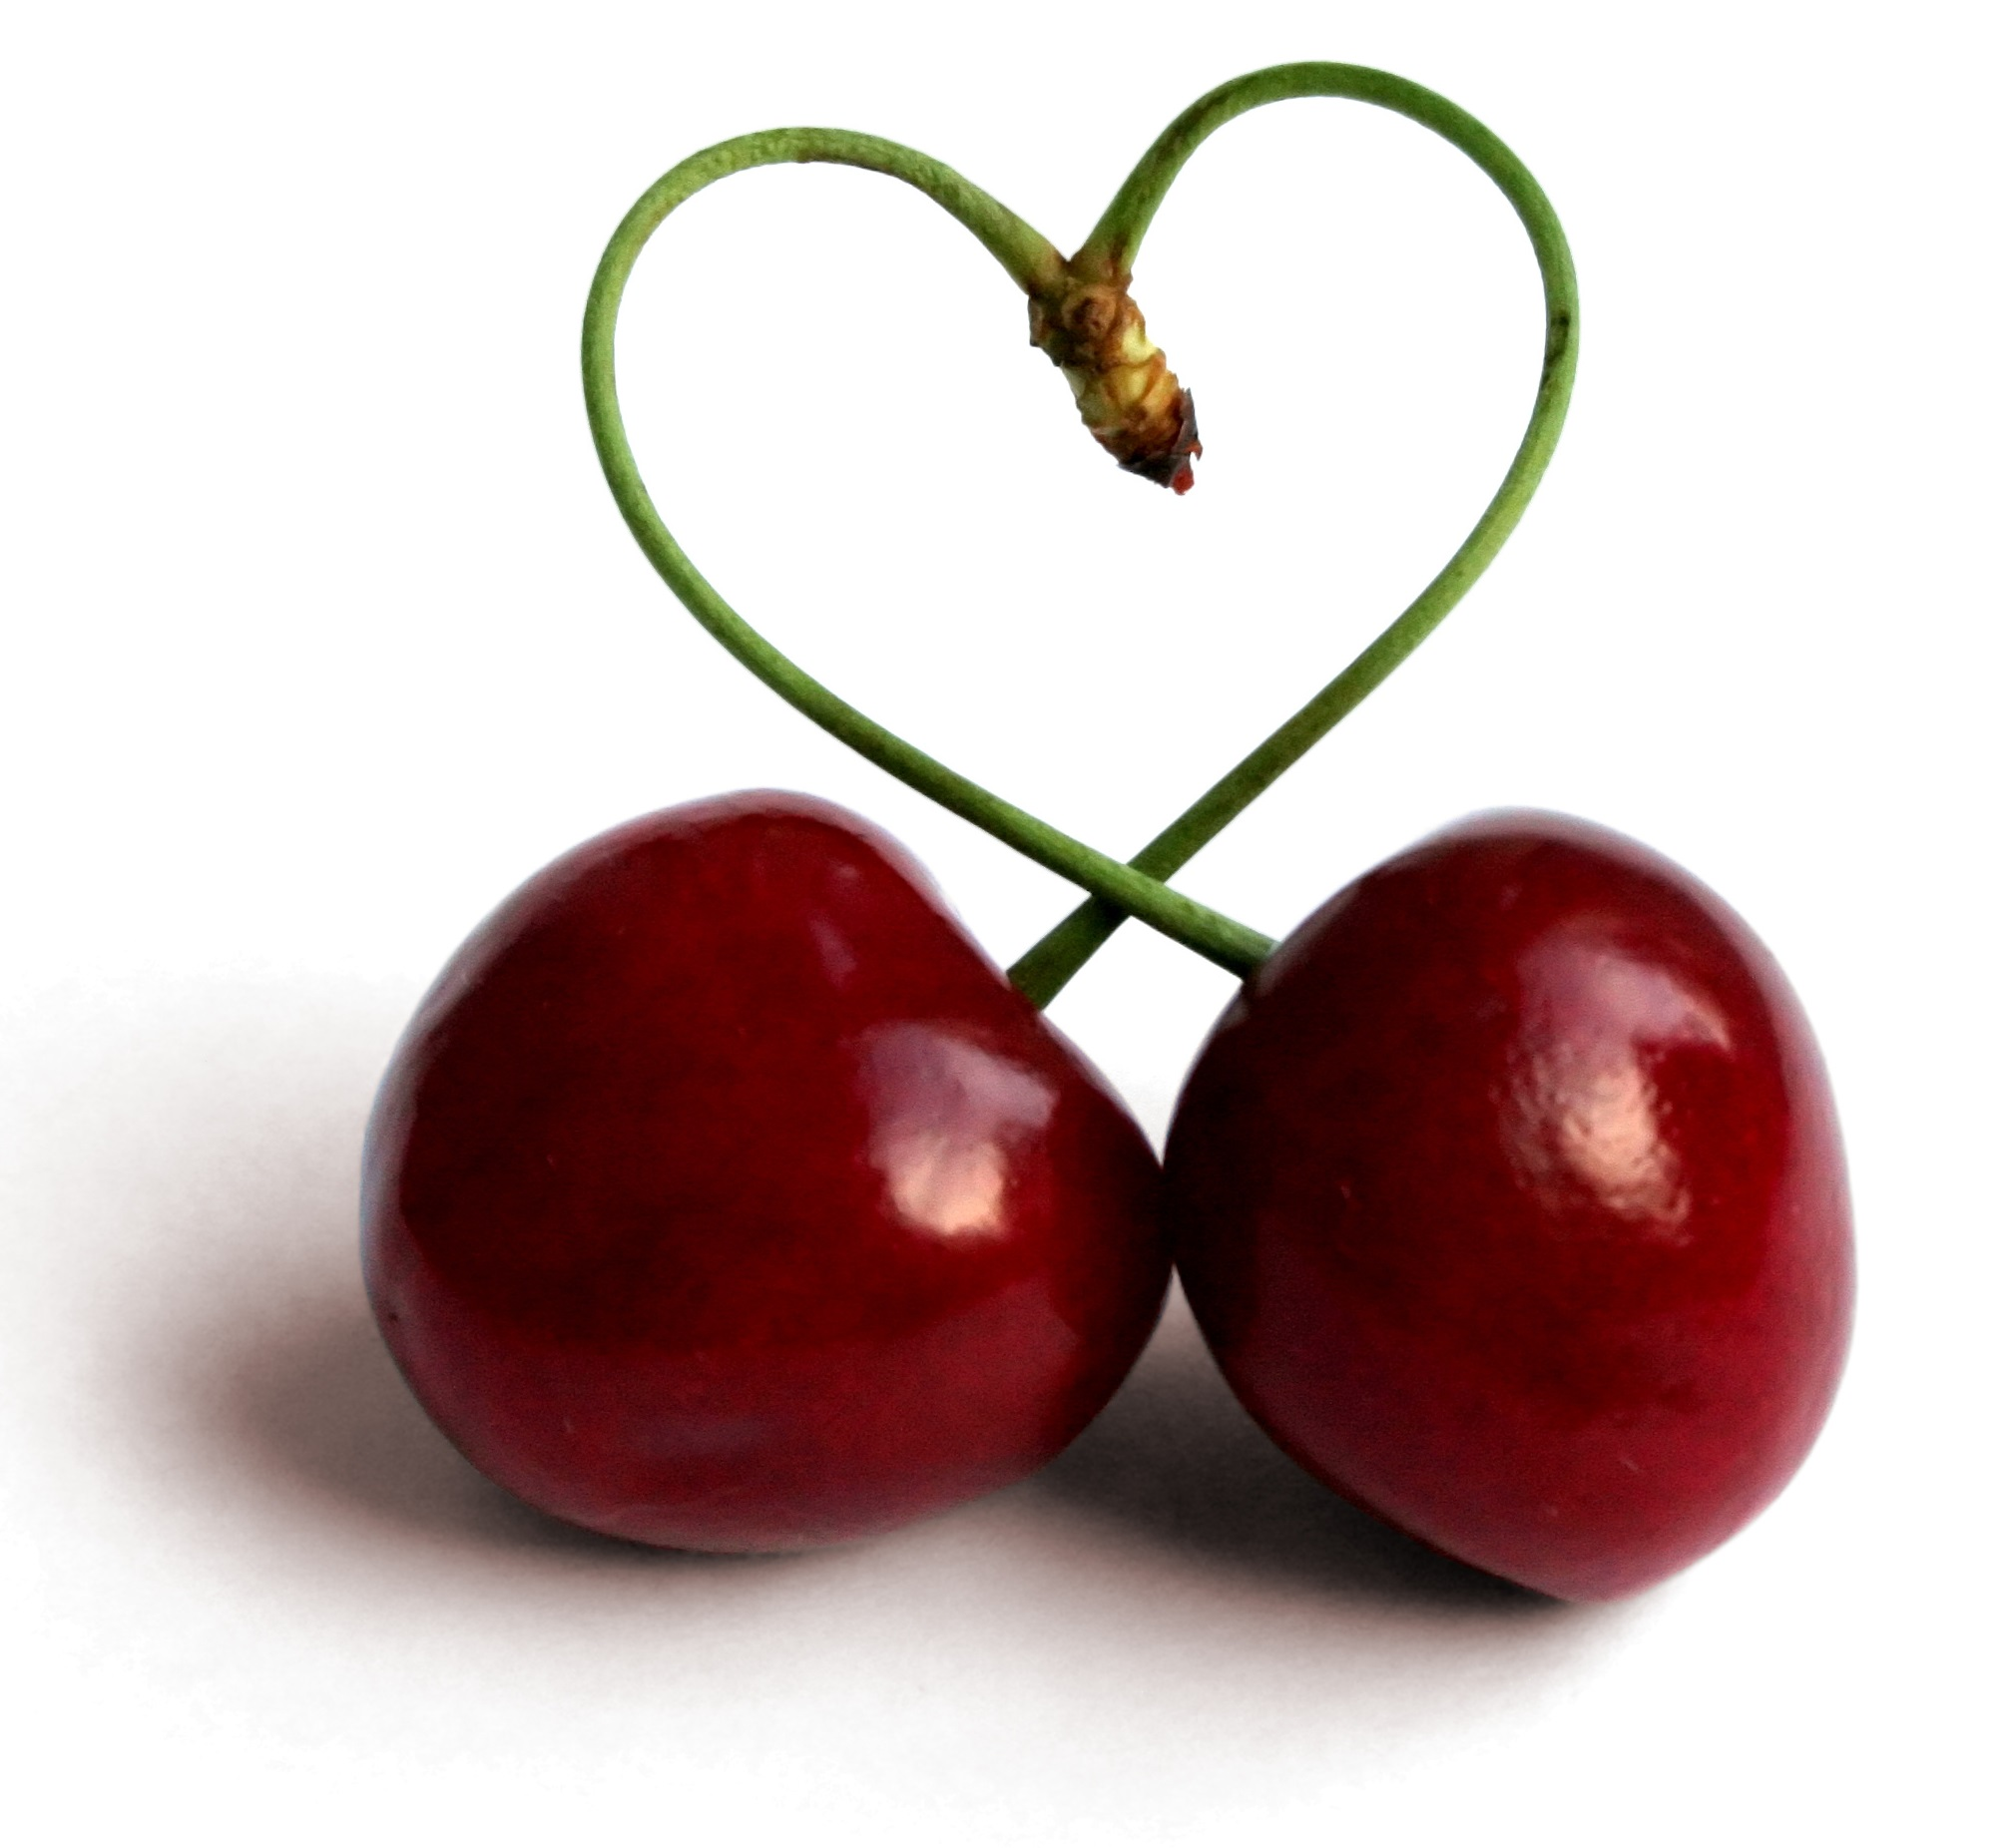 Cherry Heart Image 456.28 Kb